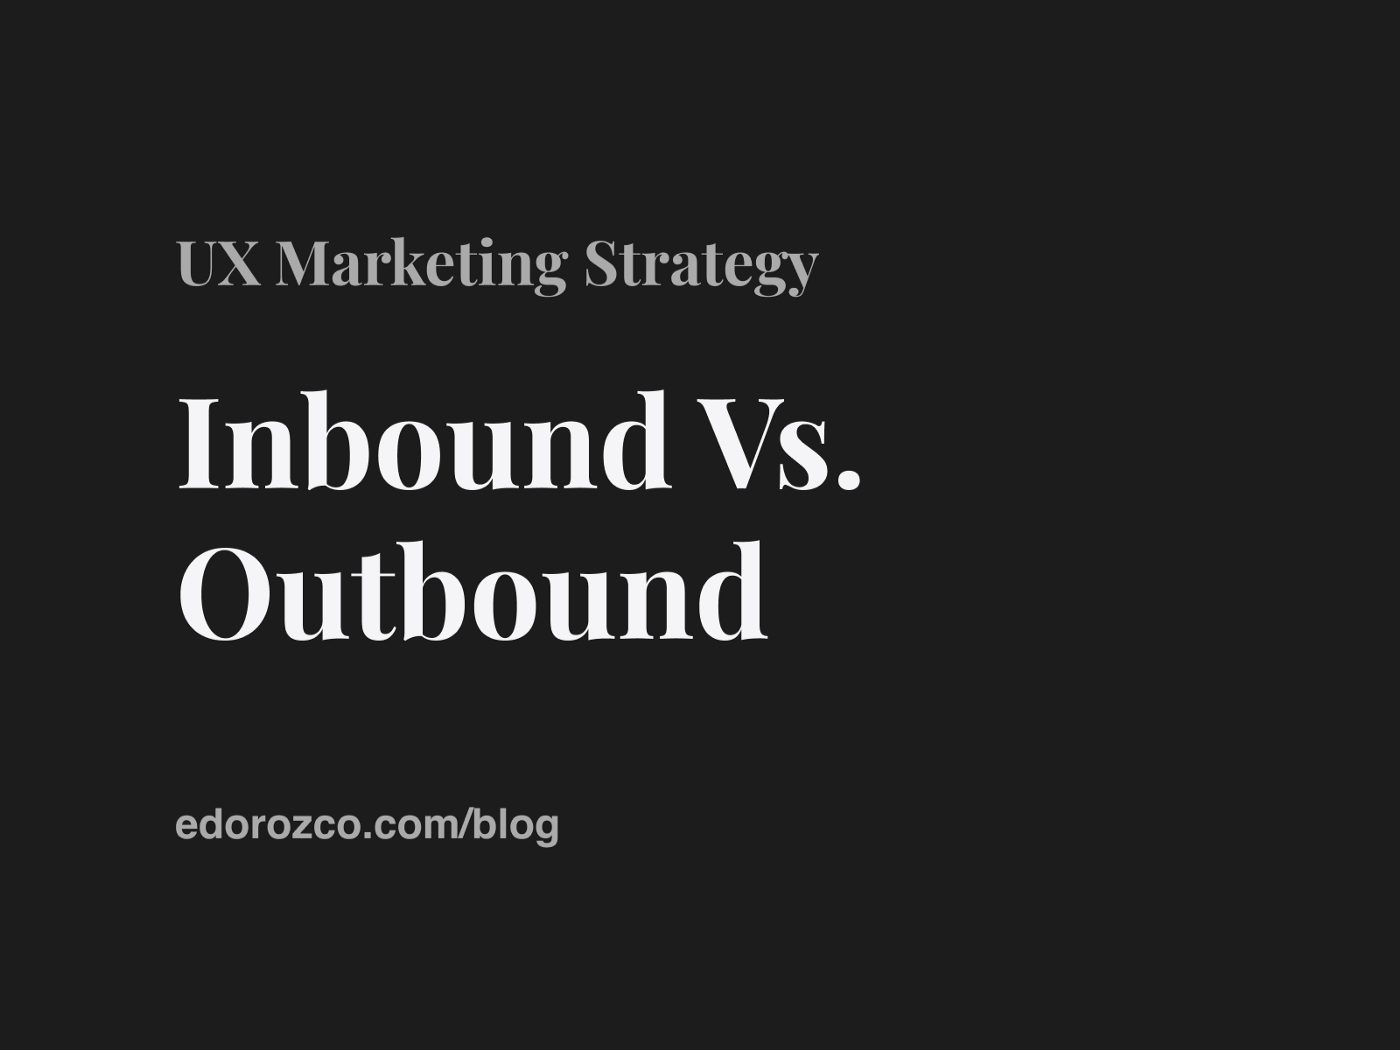 """Large text saying """"UX Marketing Strategy. Inbound vs. Outbound."""